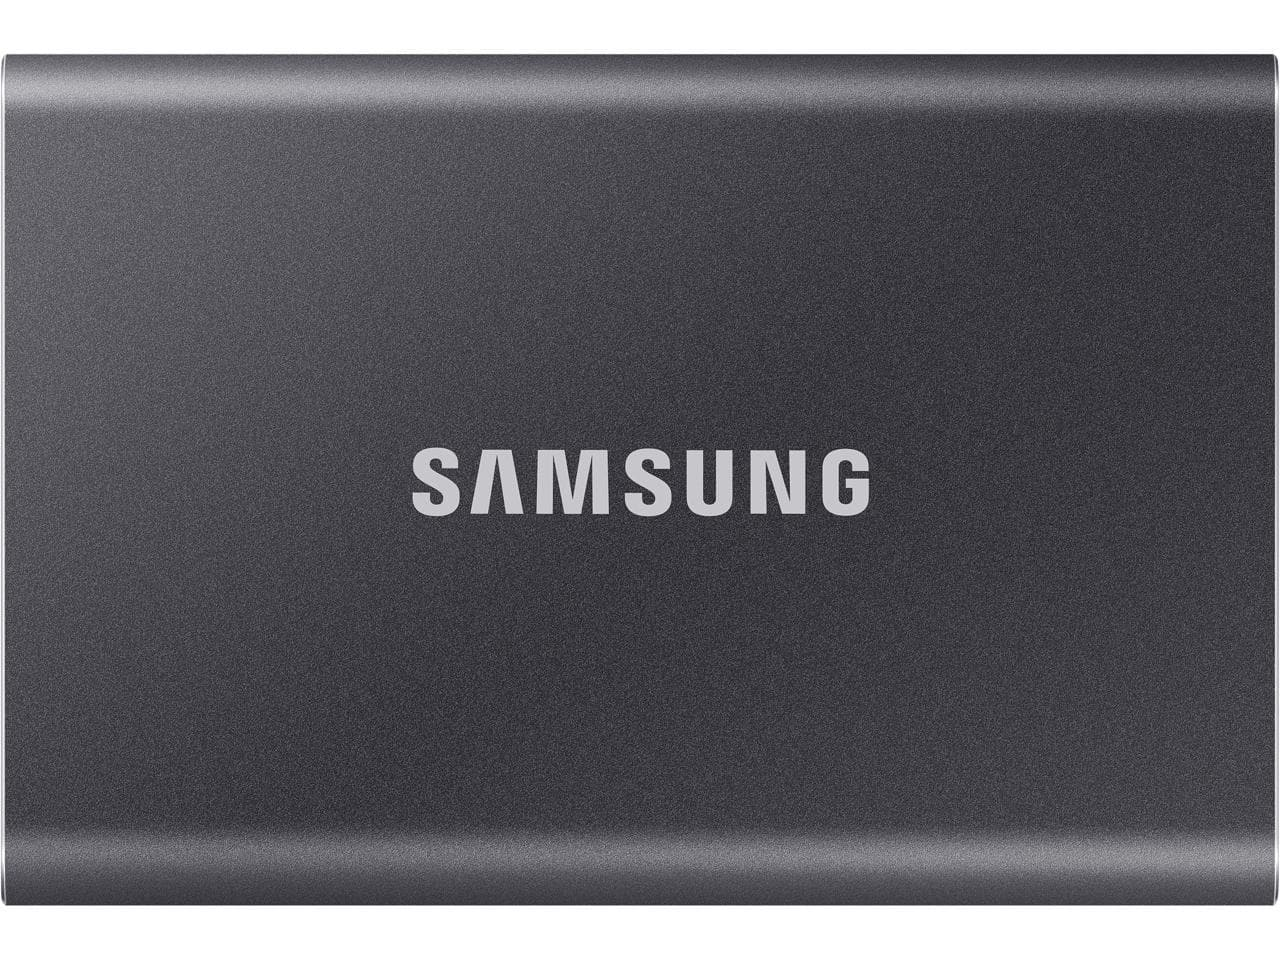 Samsung 500GB T7 USB 3.2 Portable Solid State Drive SSD (Blue or Grey) $70 + Free S/H $69.99 at Newegg and Samsung